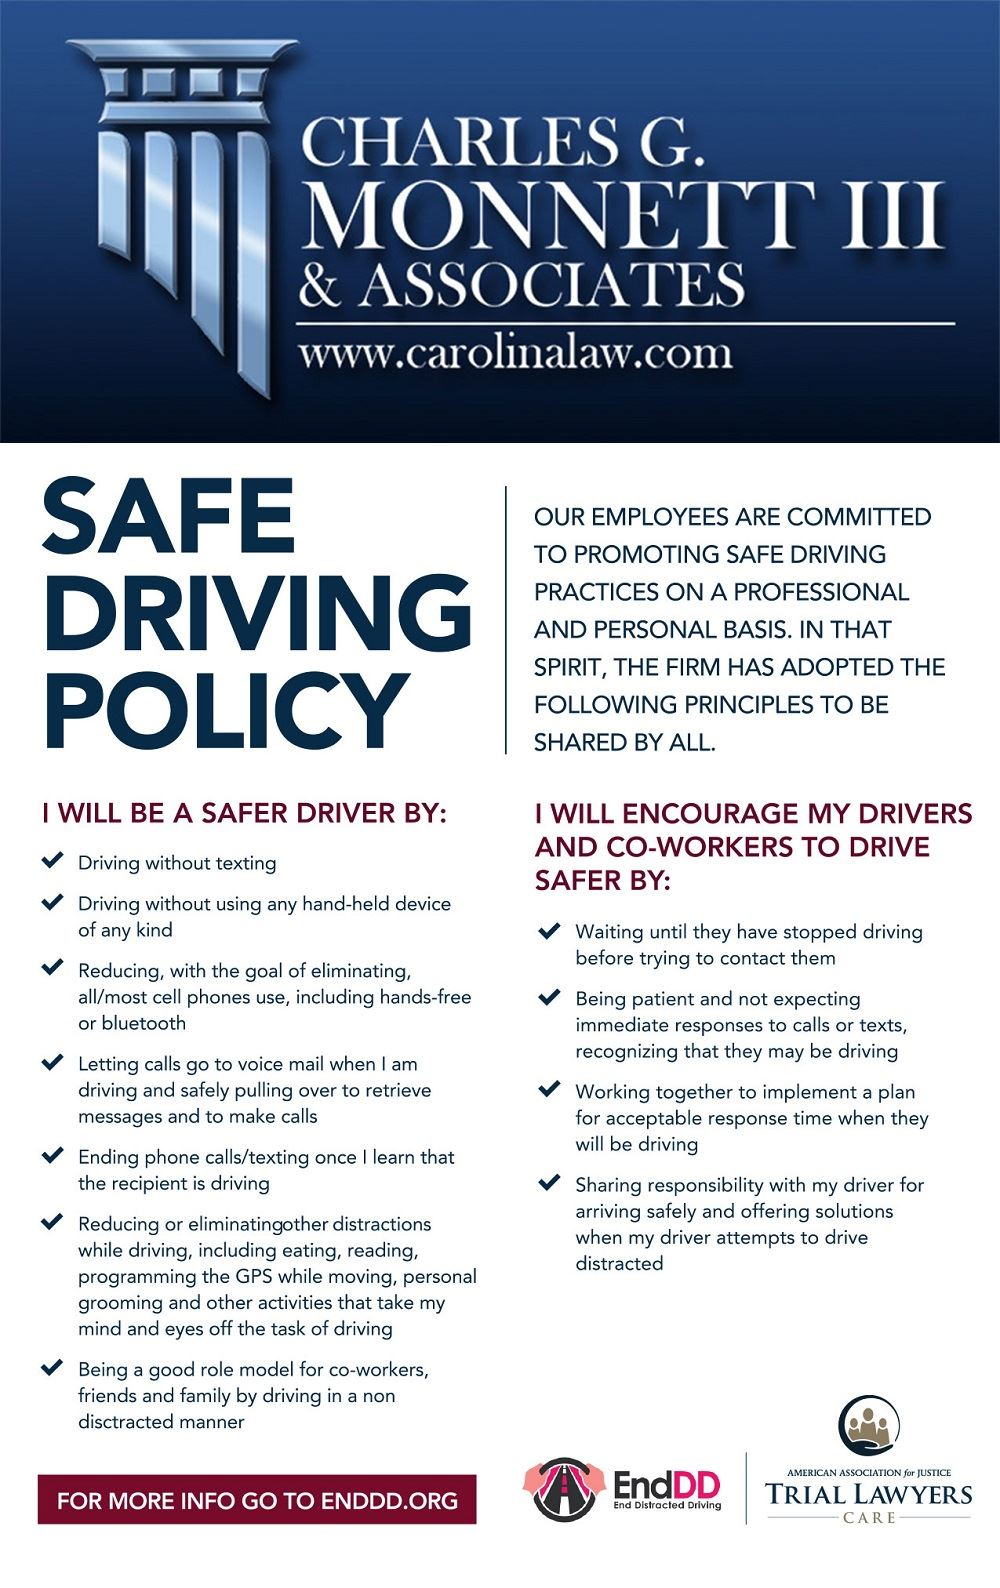 Charles G. Monnett III & Associates Safe Driving Policy infographic